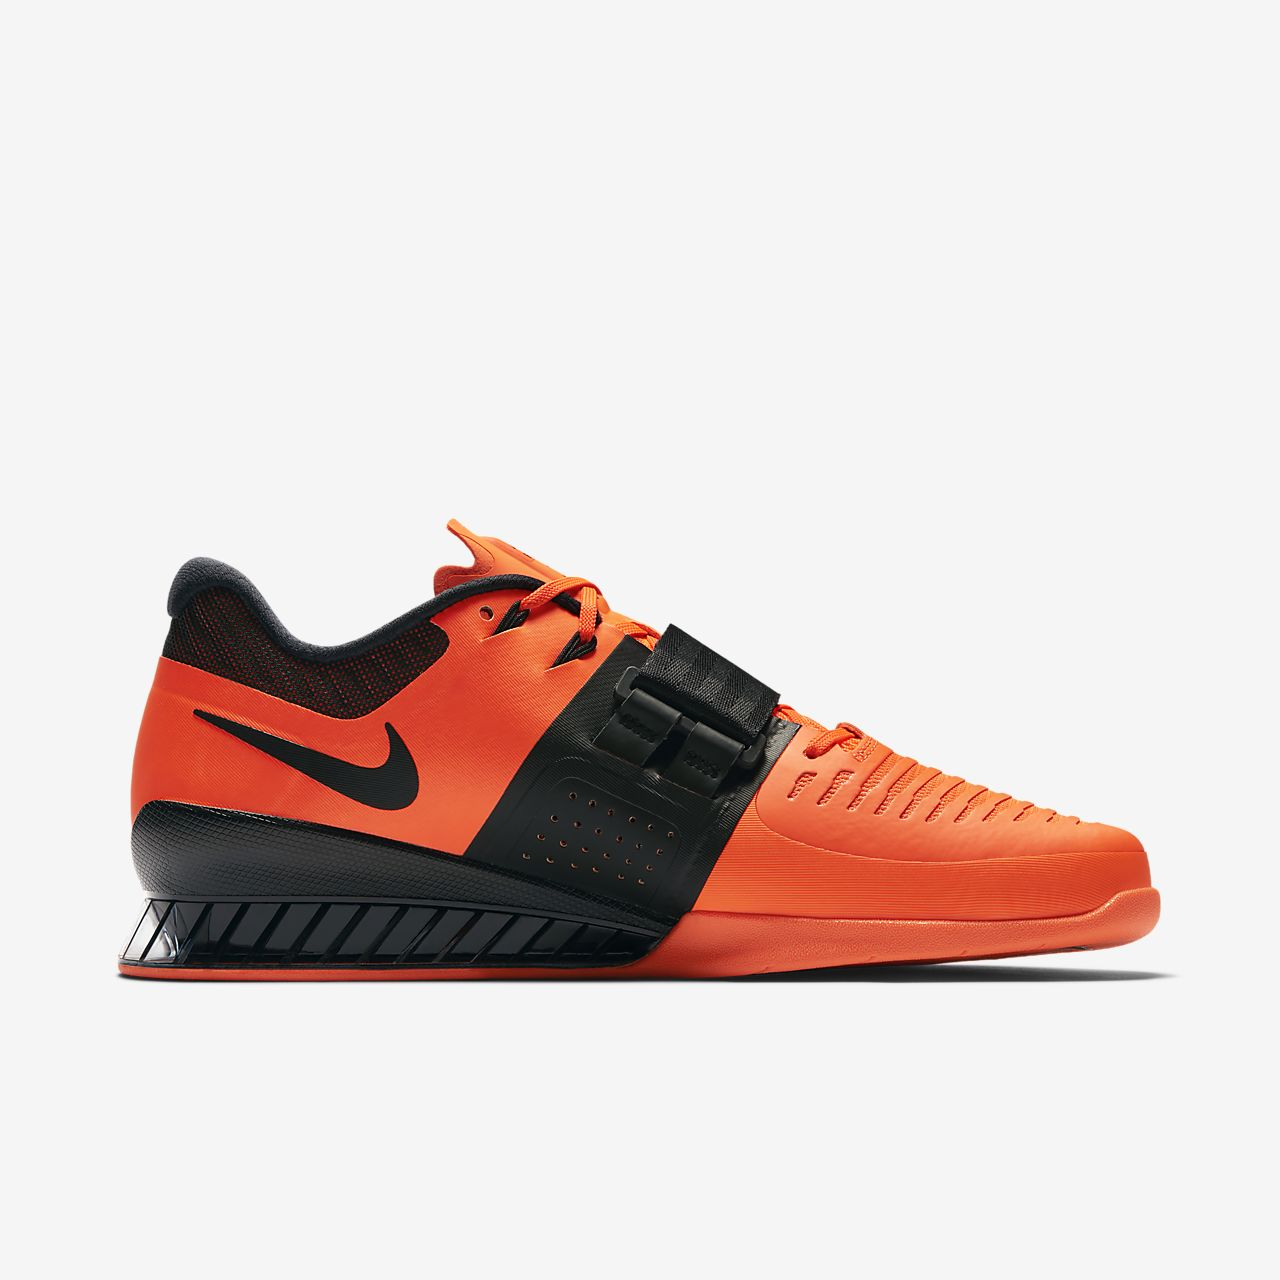 buy online c3bc9 b7a5e Low Resolution Nike Romaleos 3 Weightlifting Shoe Nike Romaleos 3  Weightlifting Shoe